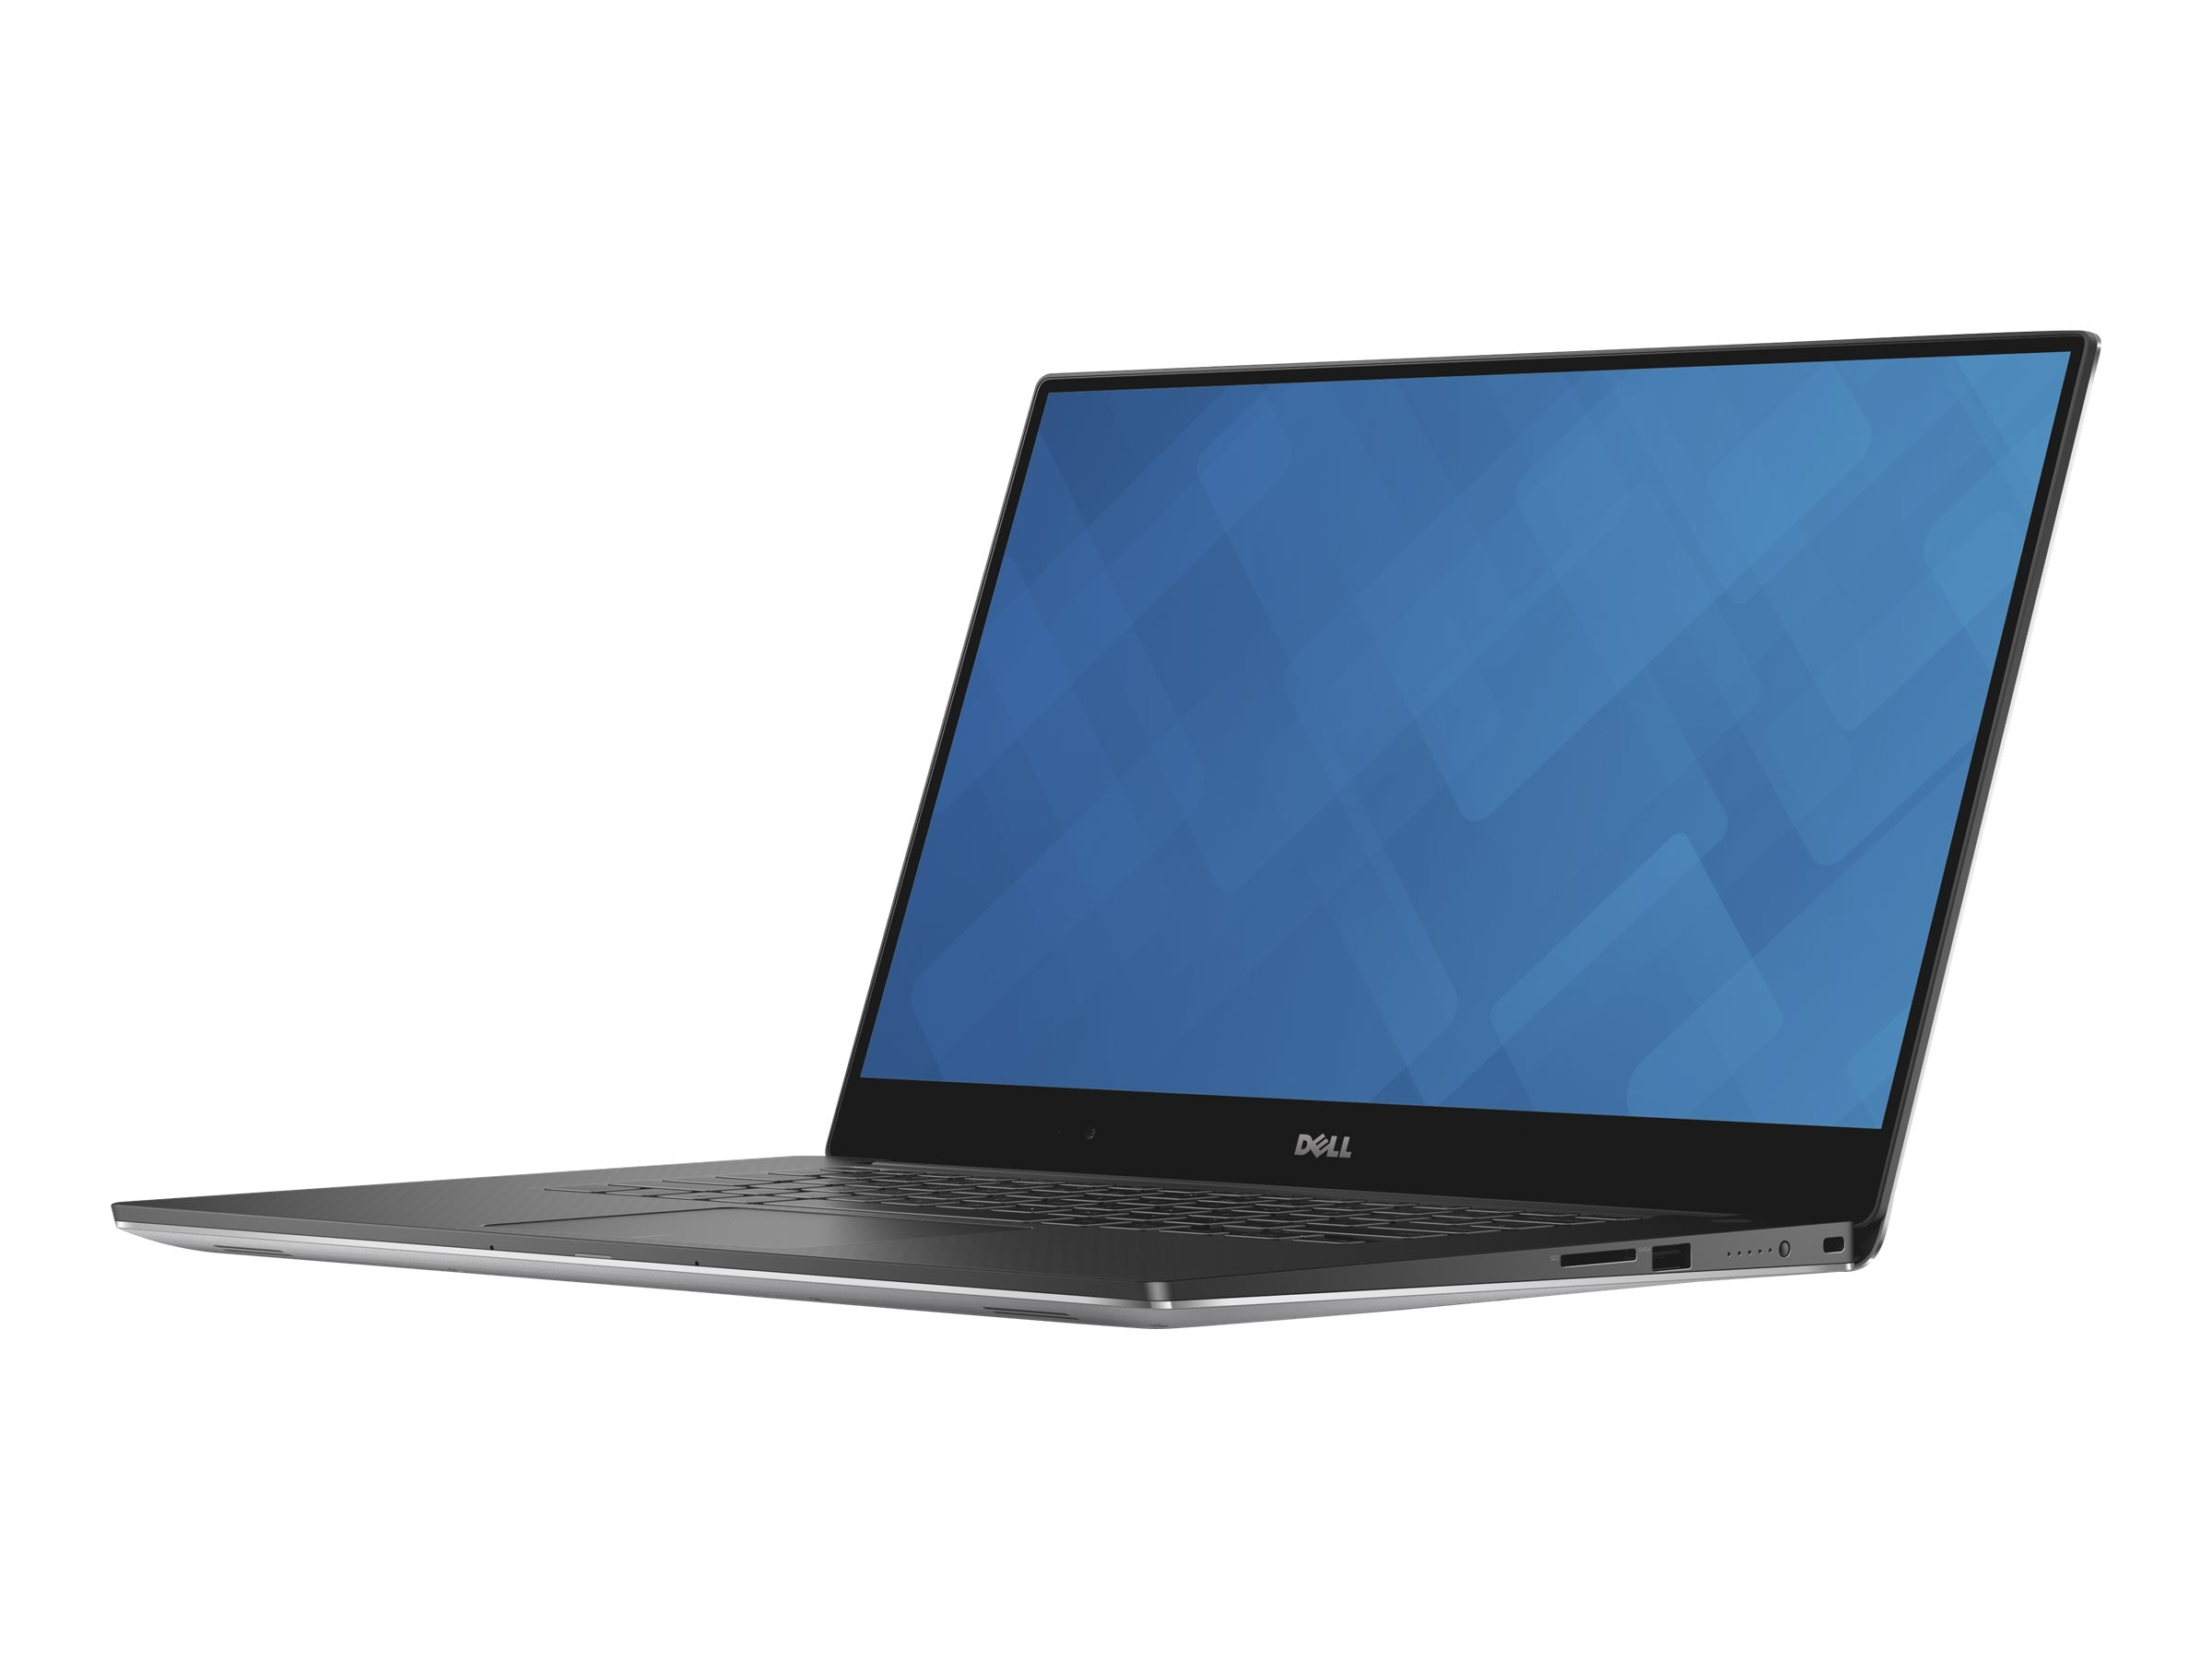 Dell Precision 5510 Core i7 2.7GHz 8GB 512GB W7 3YR NBD, MGGH3, 31867424, Workstations - Mobile